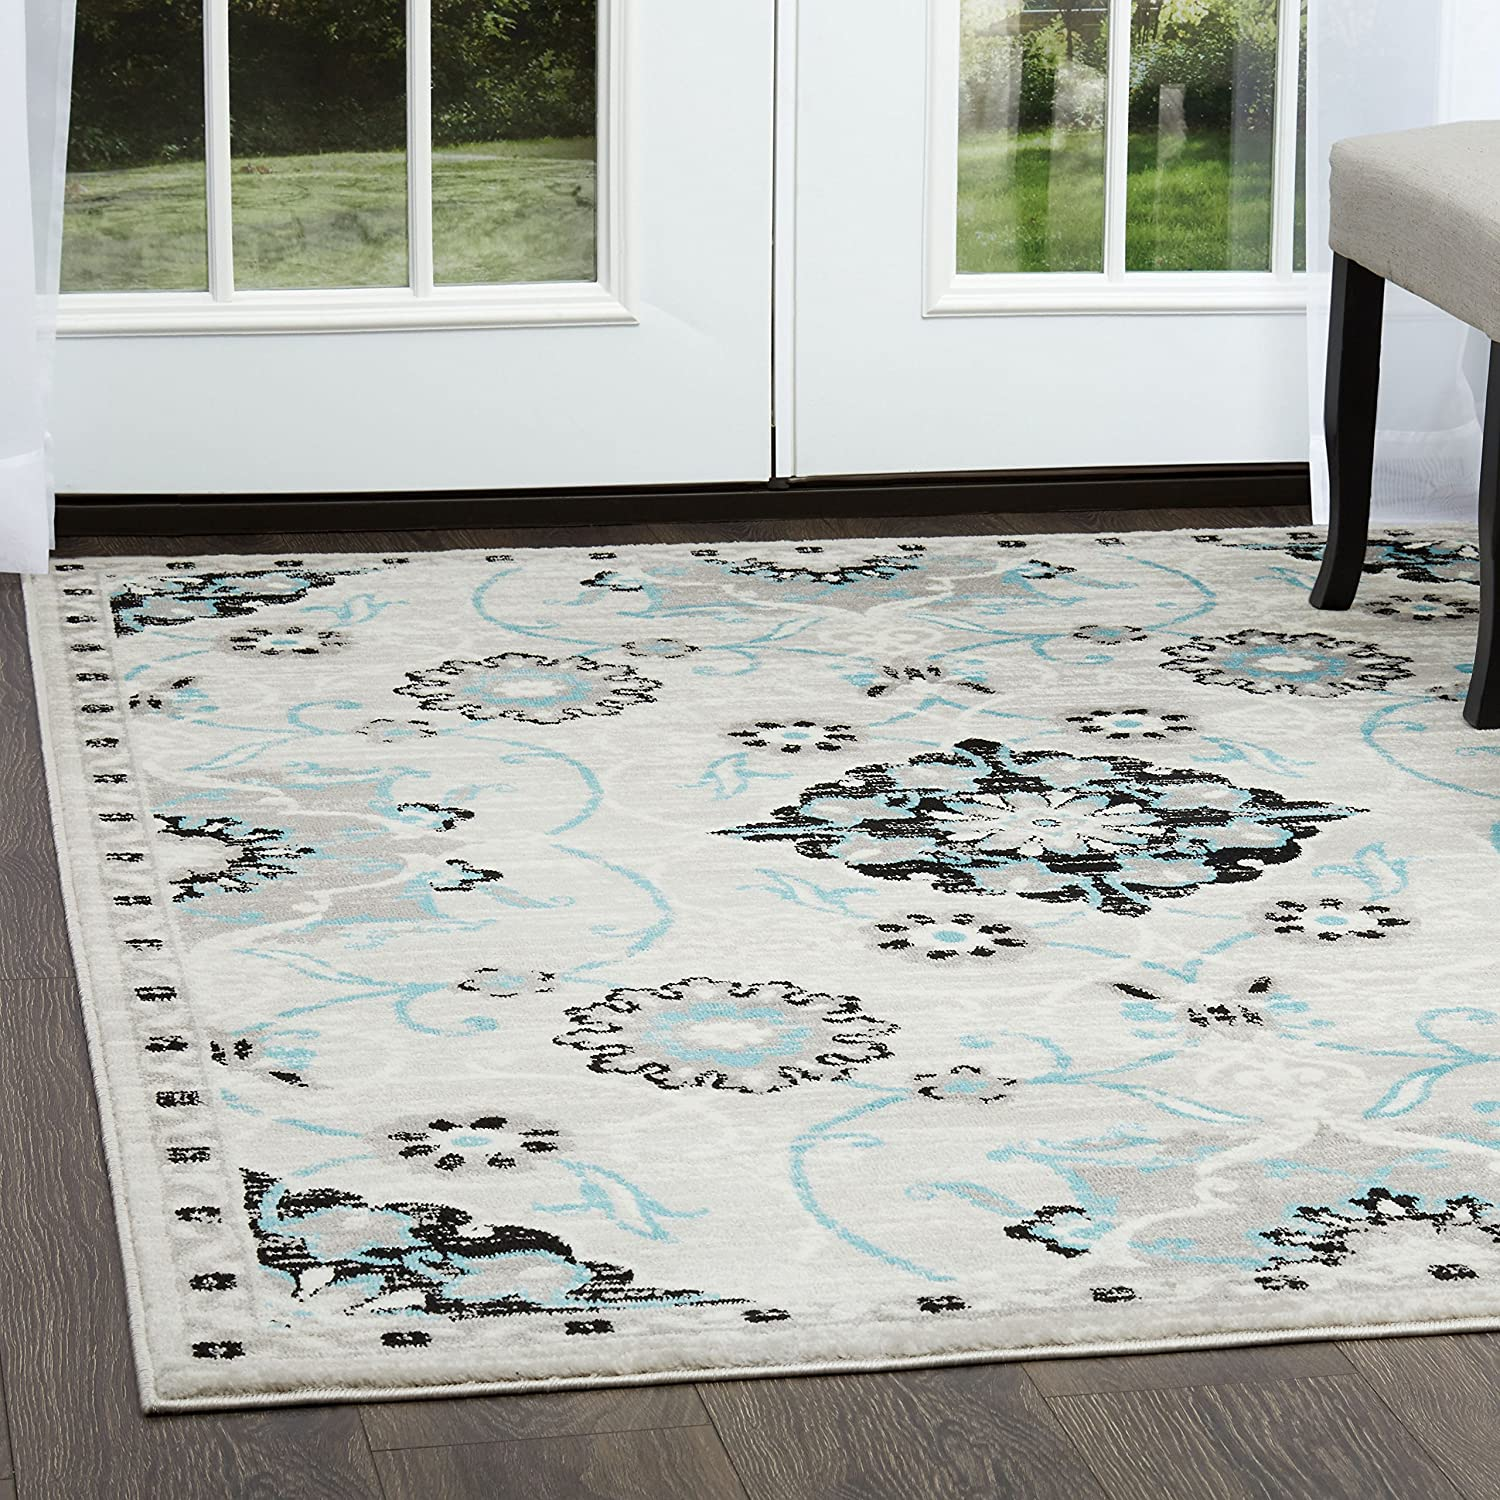 Home dynamix boho darcia area rug contemporary style all over swirl print persian inspired medallian design cozy texture silver bright blue